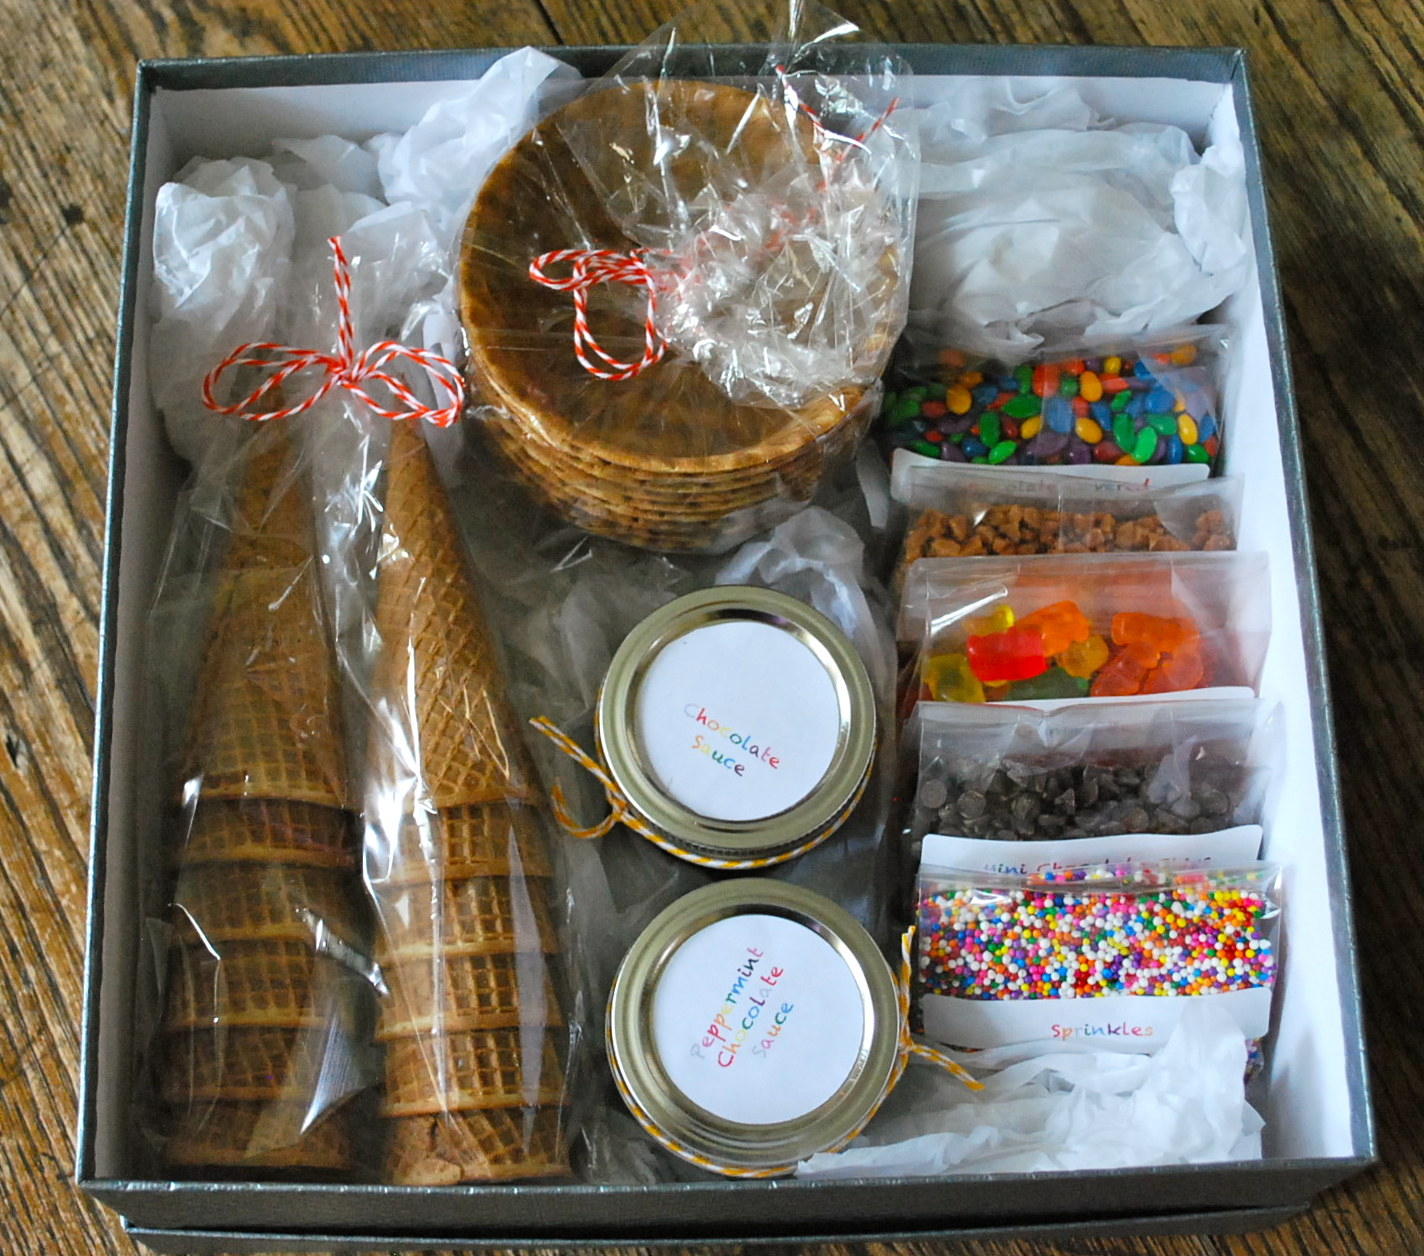 A Pinterest Christmas Diy Ice Cream Sundae Kit The